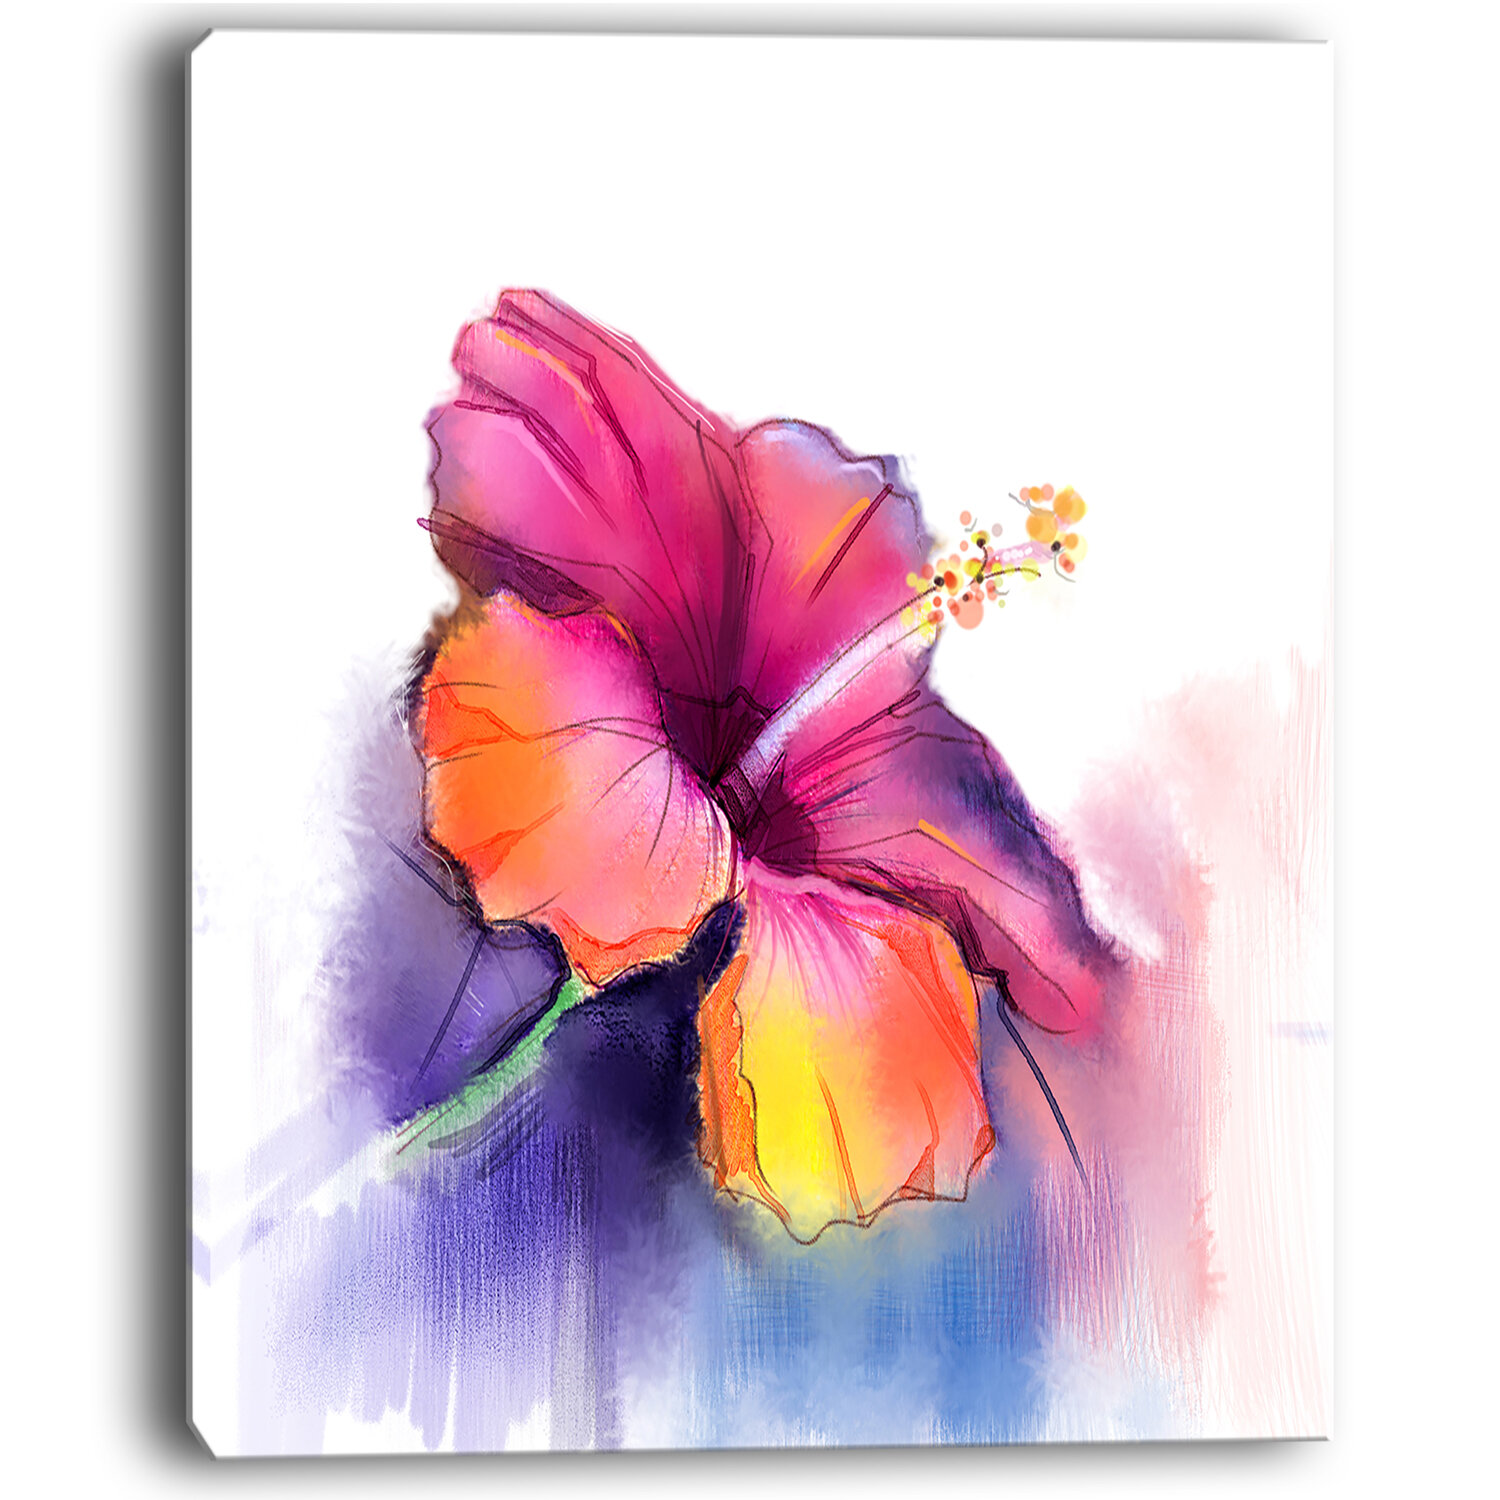 Designart red yellow hibiscus flower in blue large flower painting designart red yellow hibiscus flower in blue large flower painting print on wrapped canvas wayfair izmirmasajfo